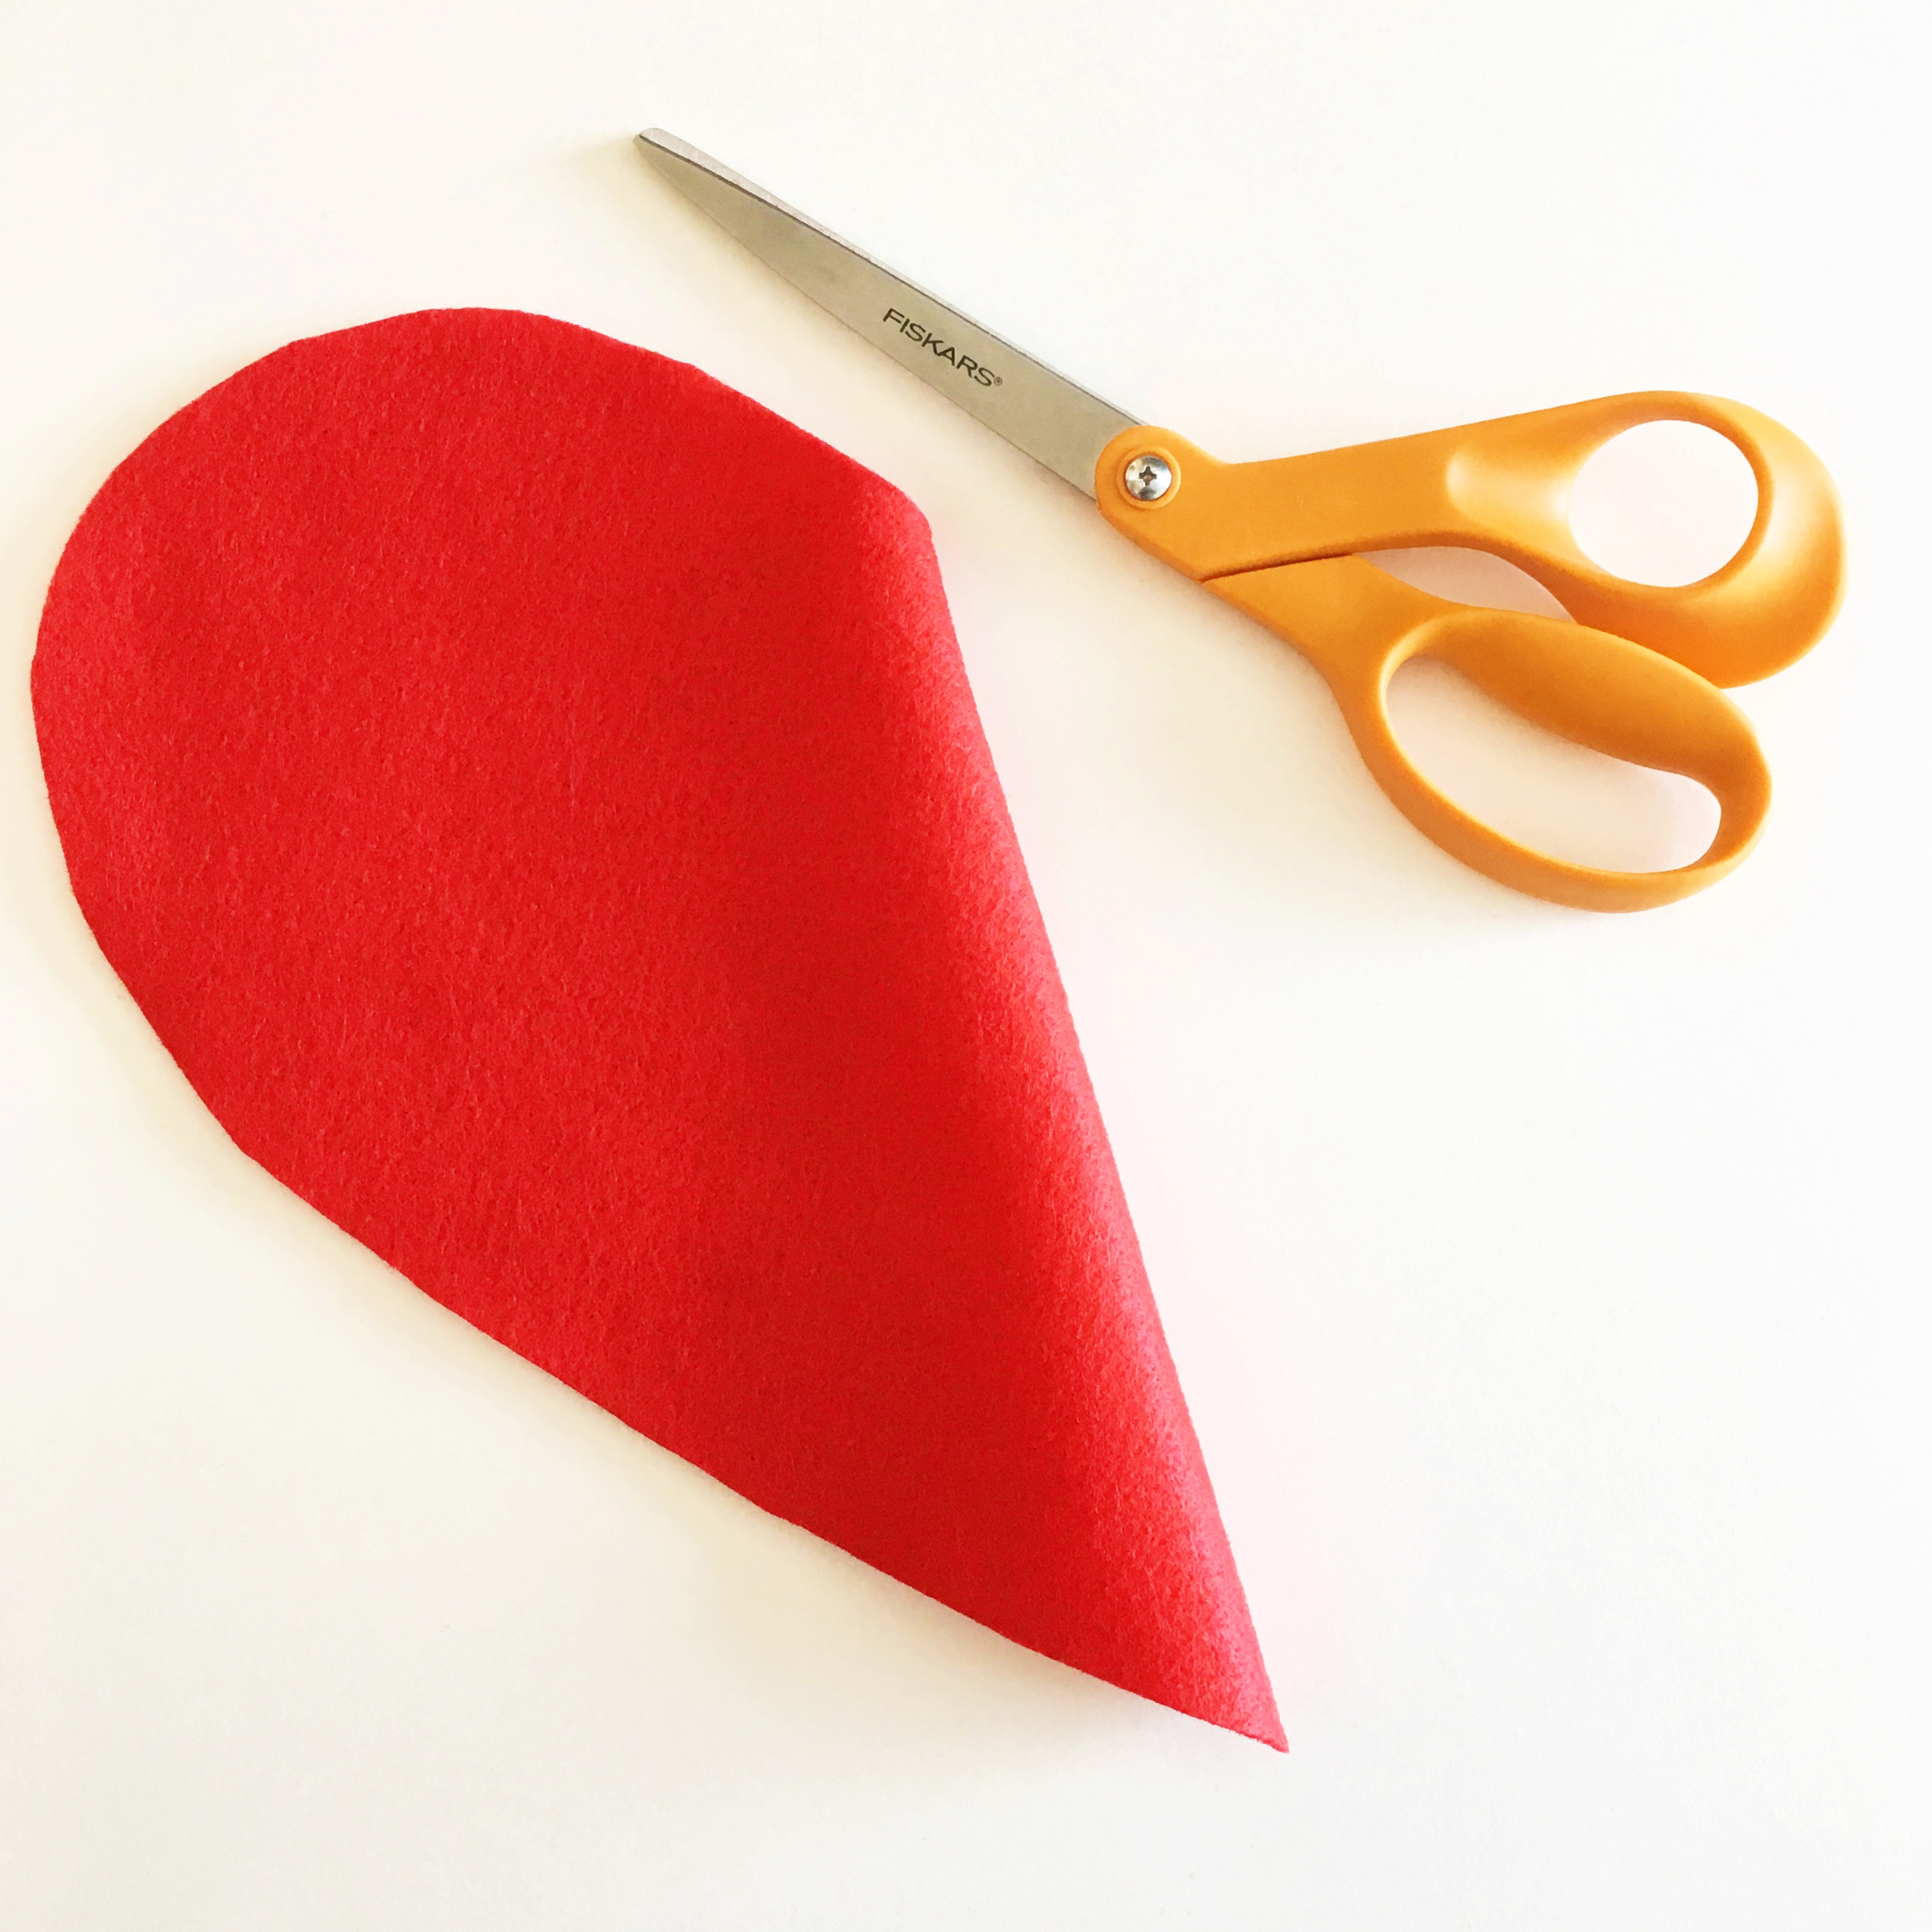 A Quilter's Heart is Golden